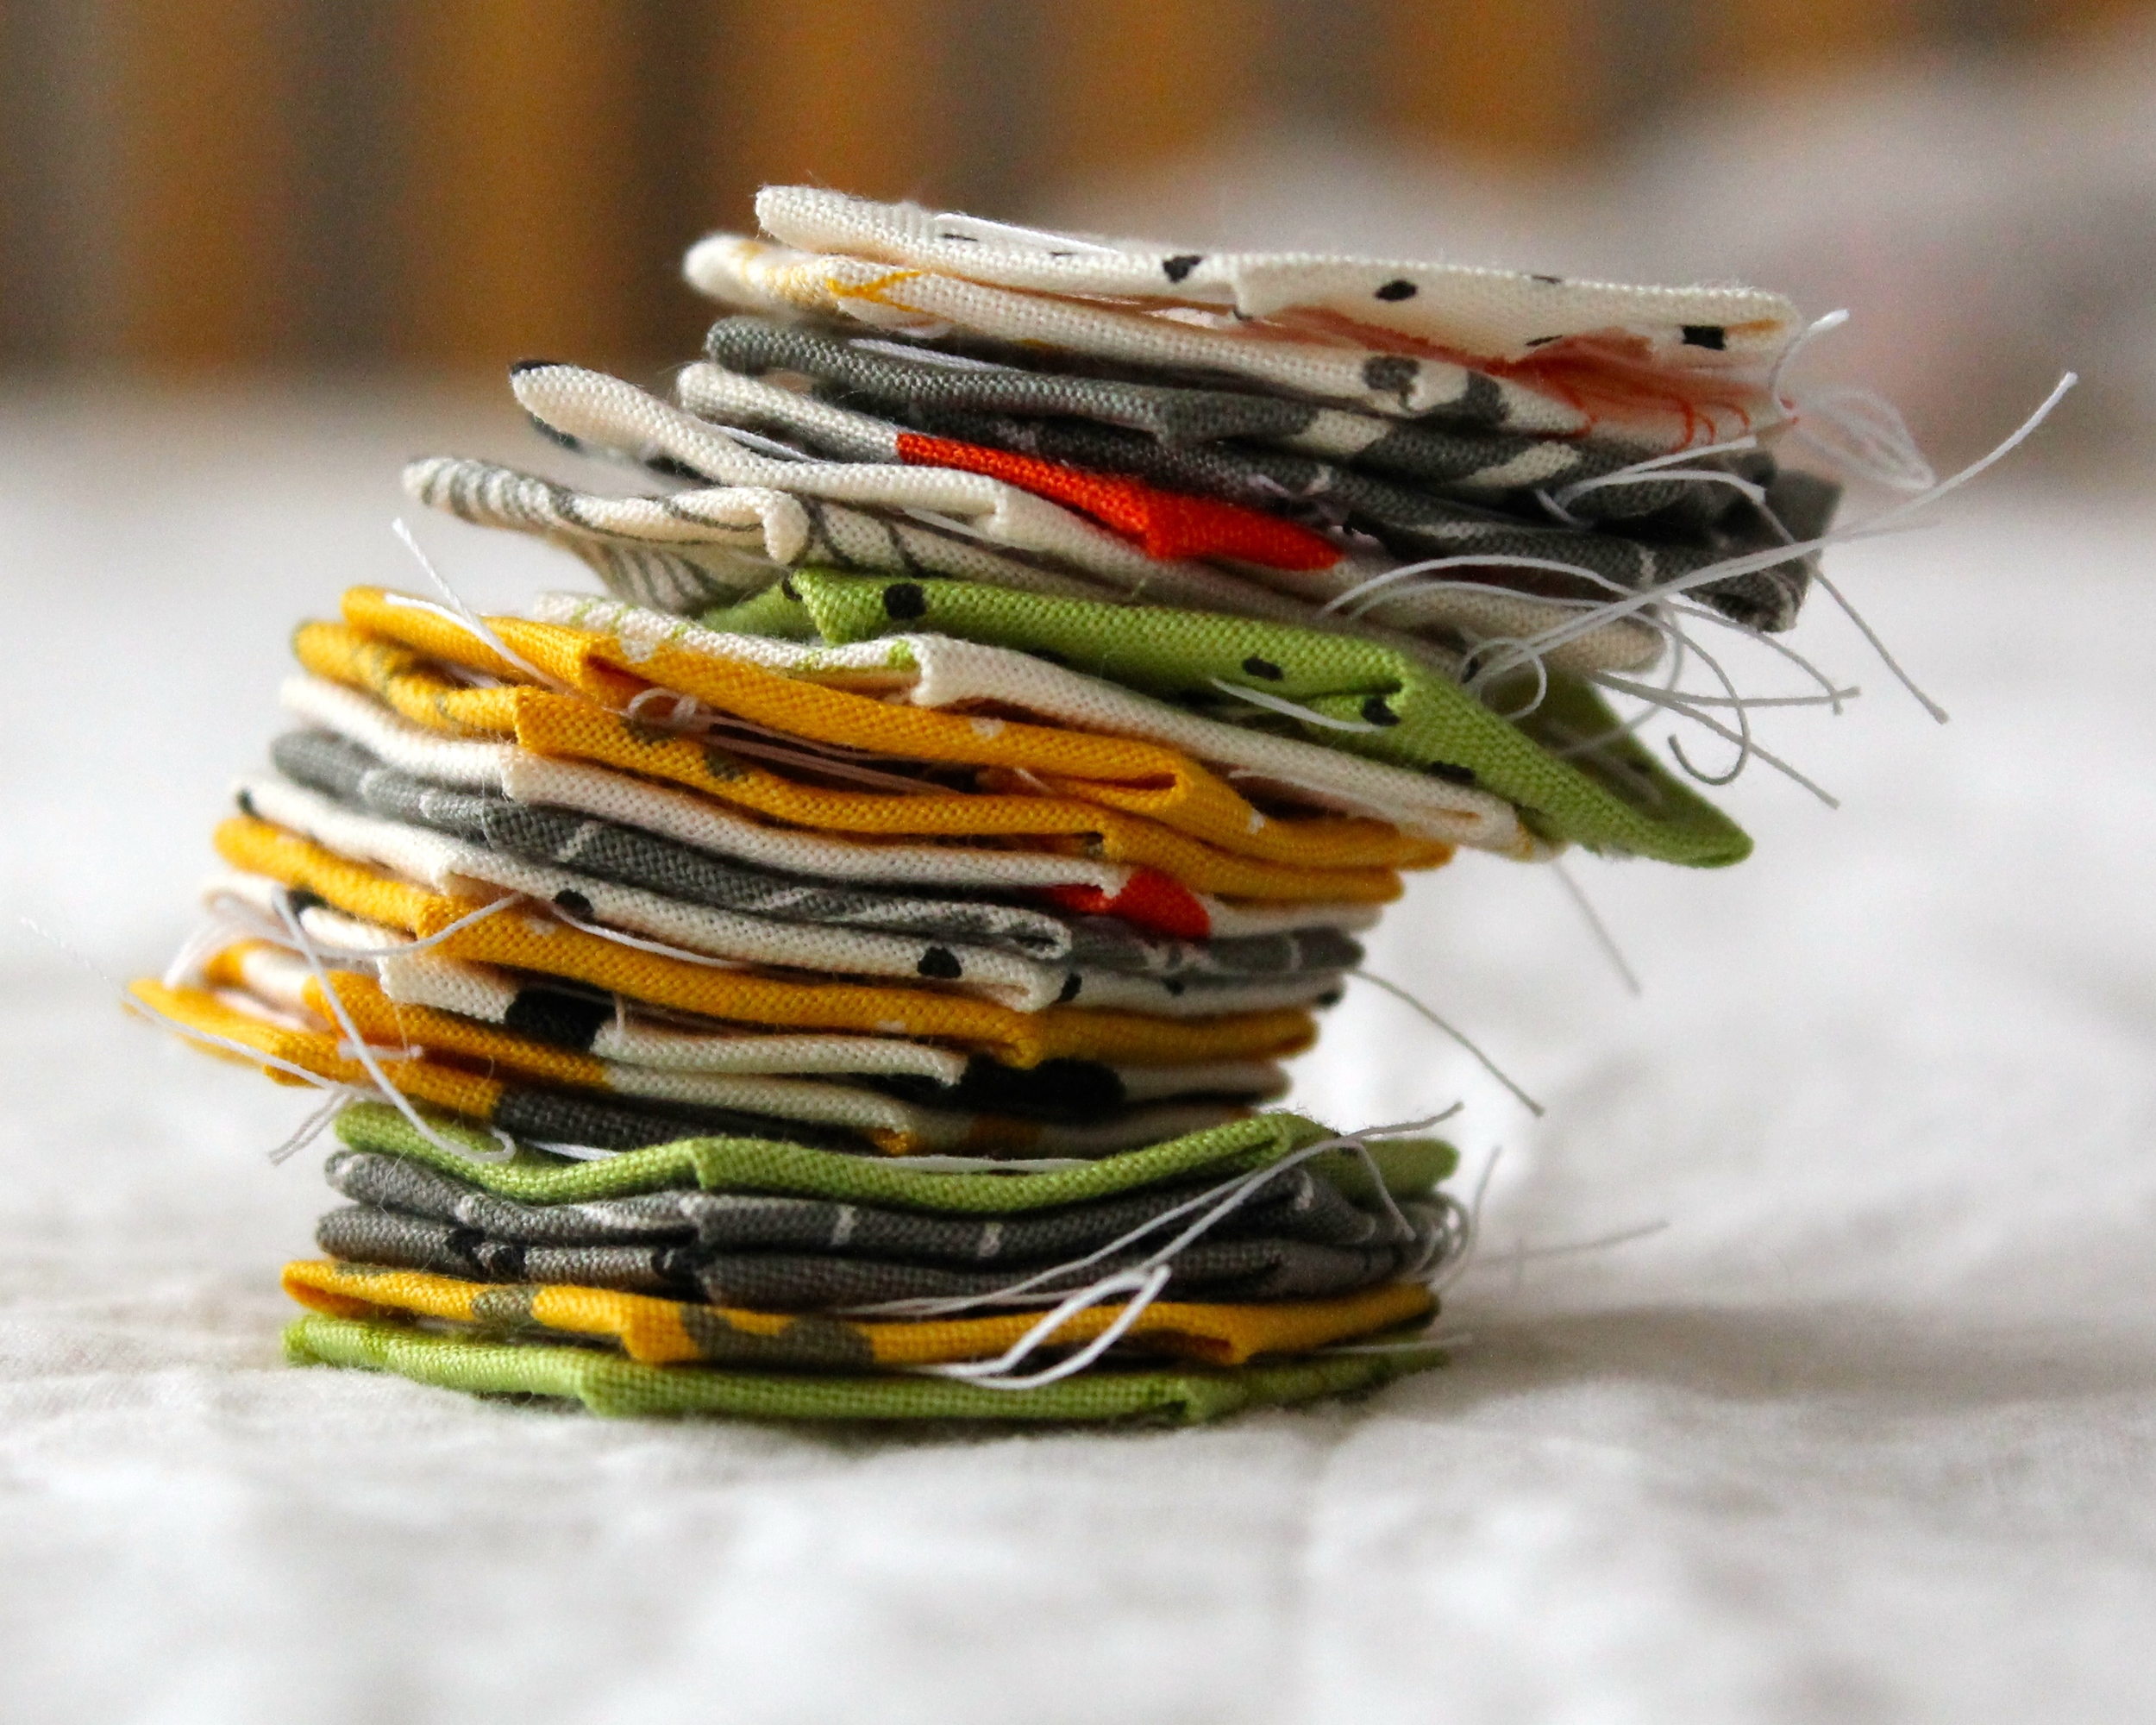 paper pieced hexagons in yellow, green, gray, white, and orange fabric, in a stack